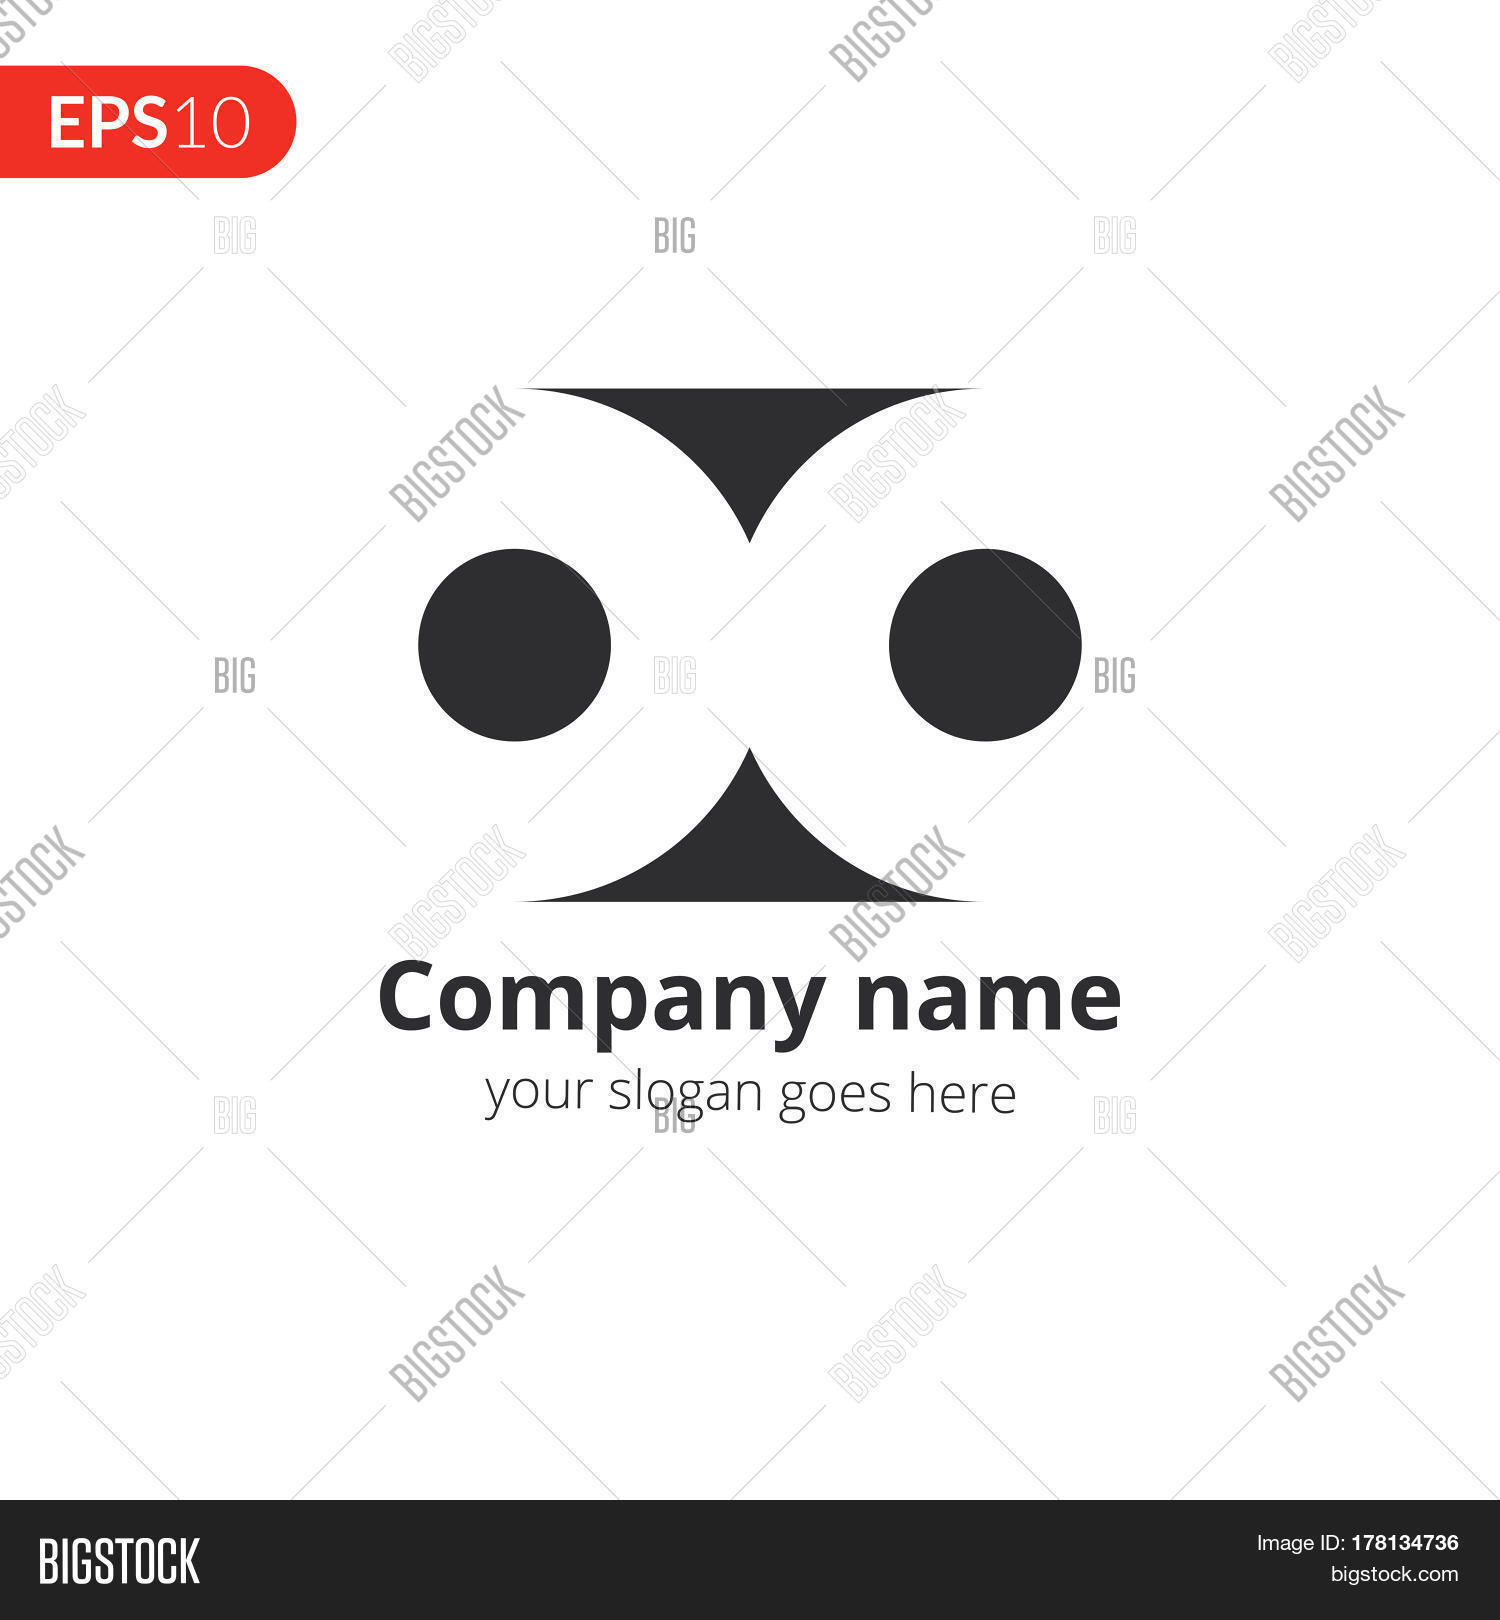 Abstract Double Circe Logo Vector Design Loop Shape Emblem Identity Icon Monochrome Symbol